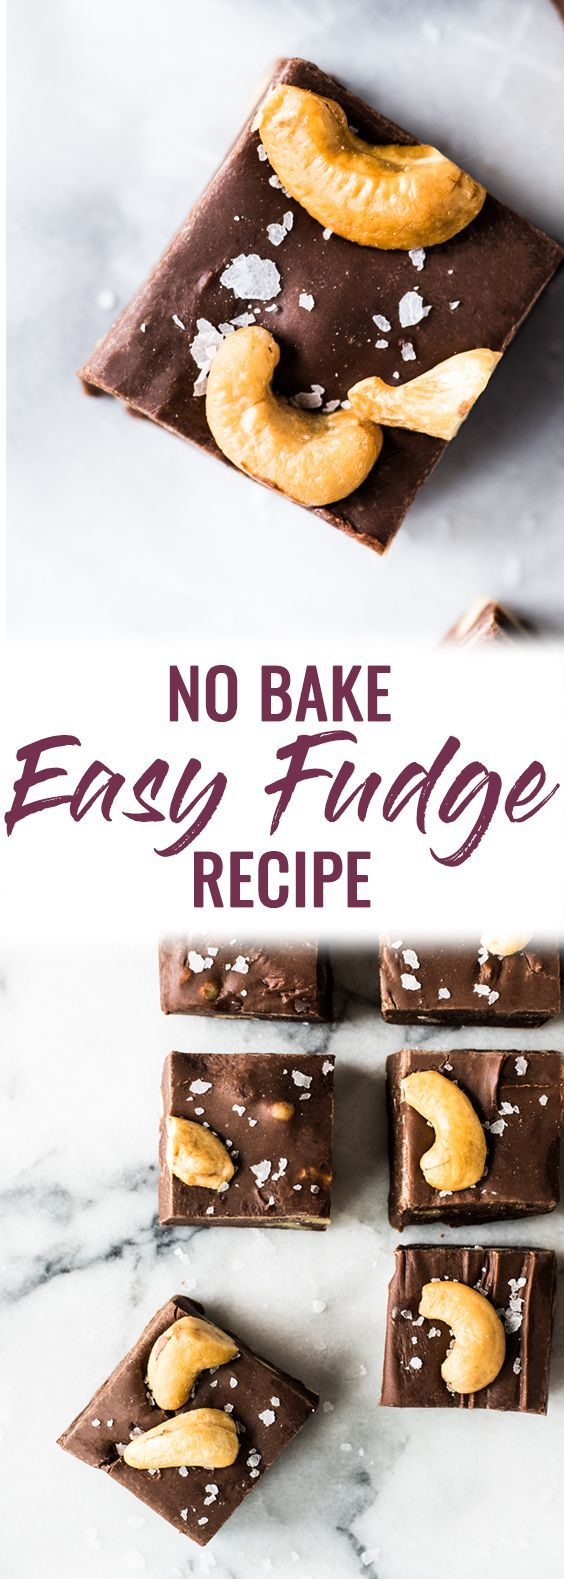 This No Bake Easy Fudge Recipe Made With Chocolate Chips Sweetened Condensed Milk And Touch Of Cinnamon Is The Onl Fudge Easy Fudge Recipes Fudge Recipes Easy